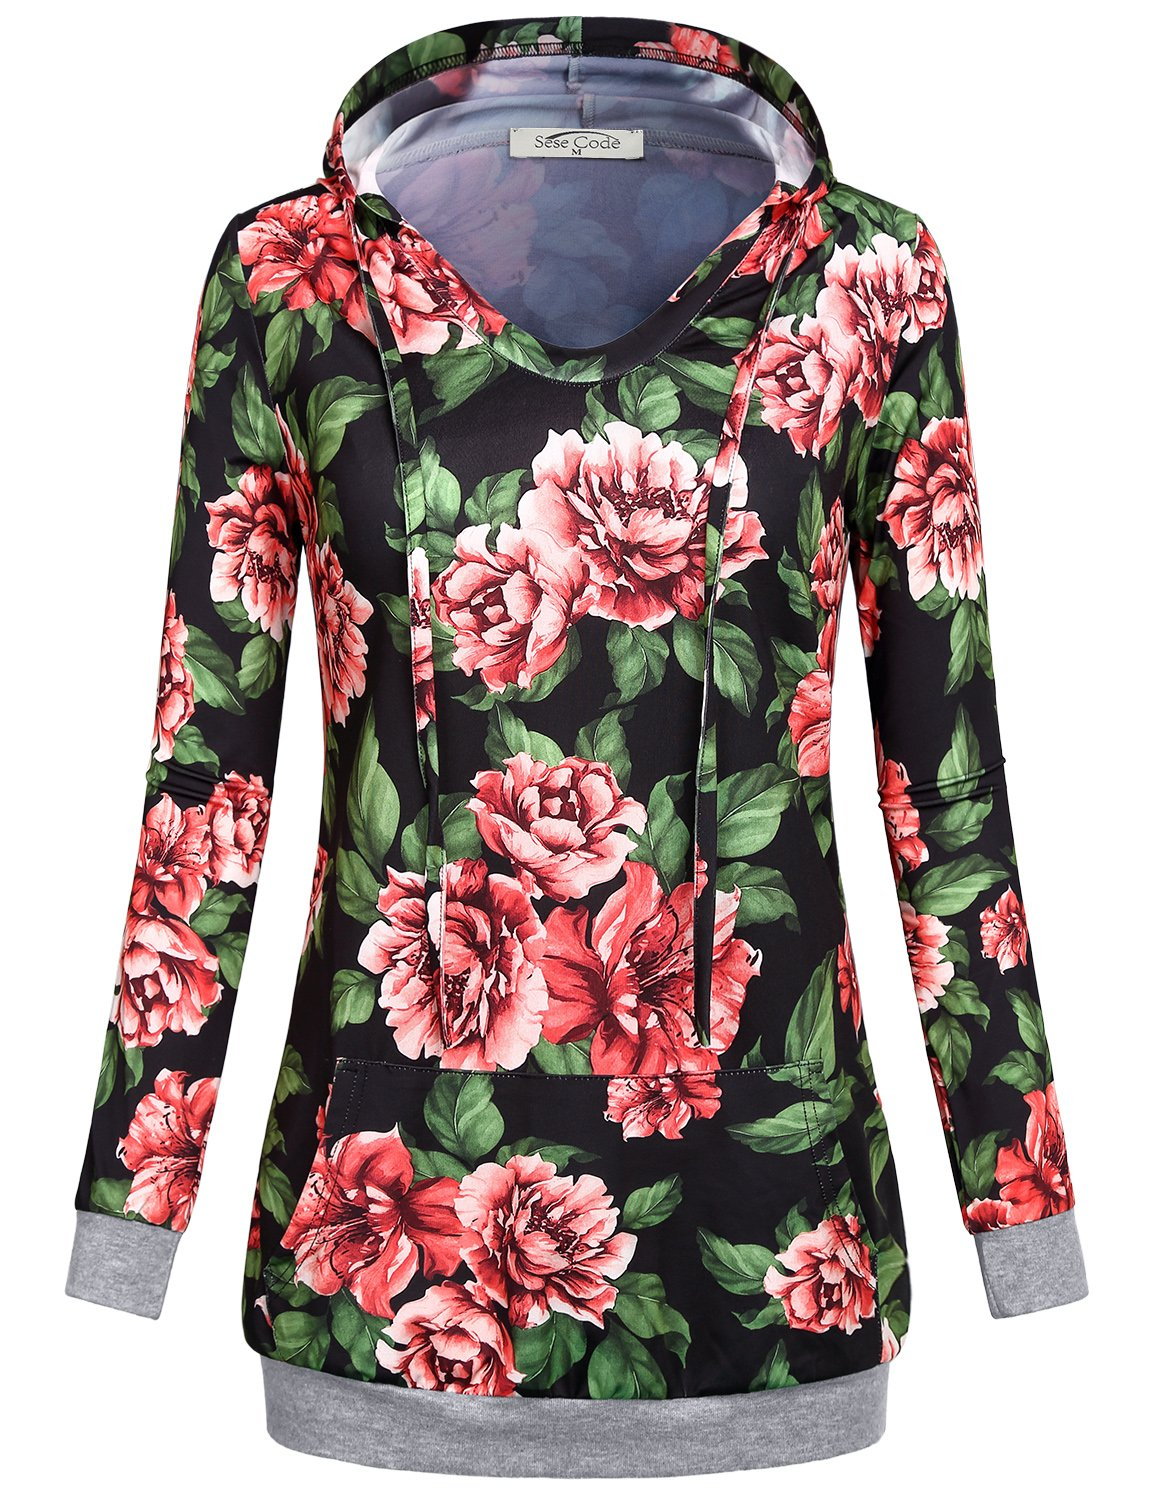 SeSe Code Hoodie Floral, Women Lightweight Pullover 2xl Large Spring Tropical Flower Collarless Contemporary Shirt Fit Loosely Travel Weekday Cold Home Sweatshirt with Hood Top Black XXL